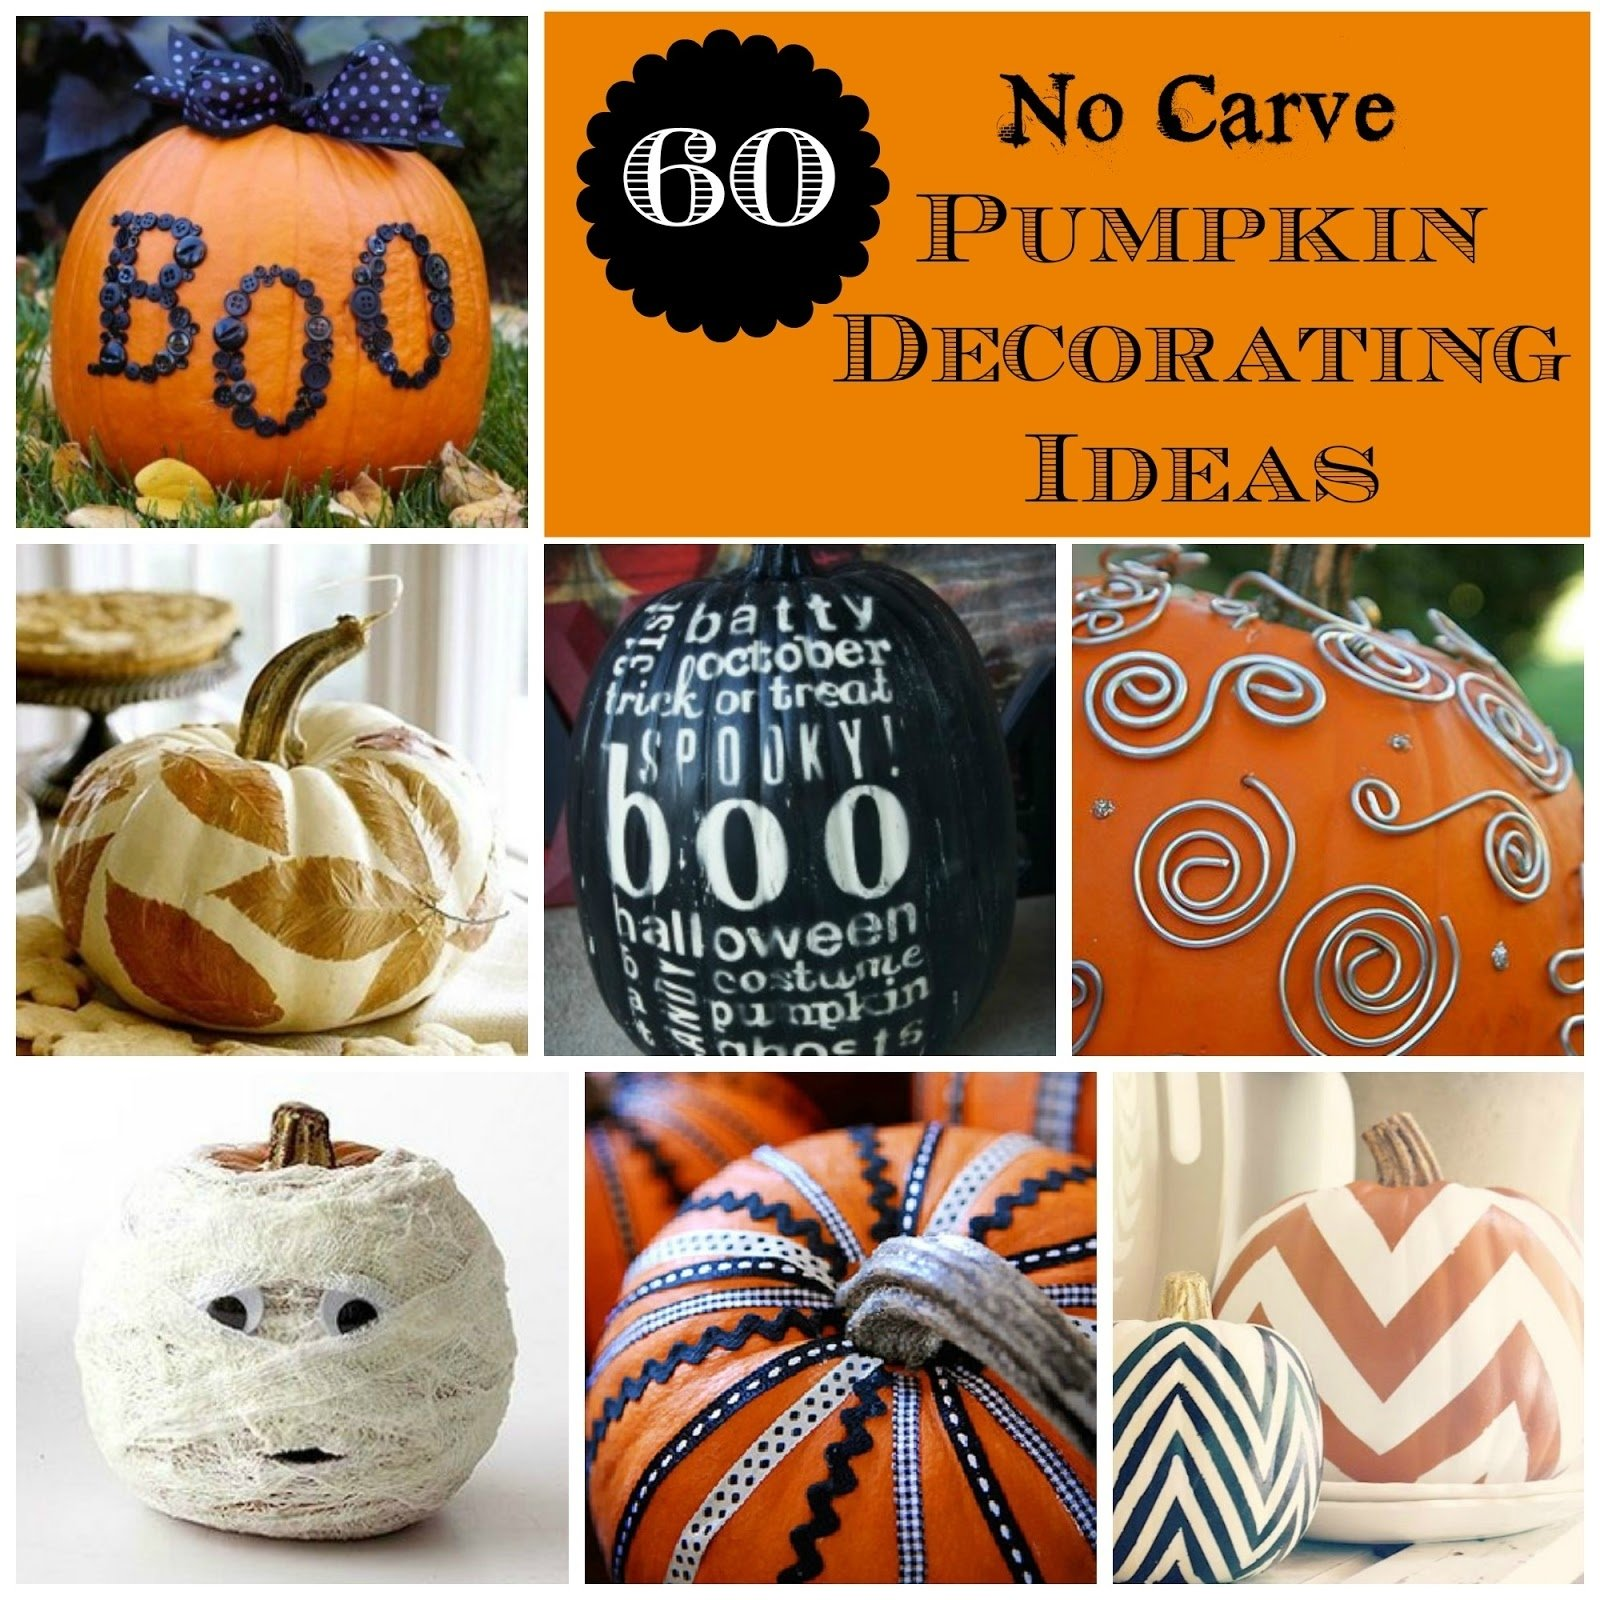 10 Stunning No Carve Pumpkin Decorating Ideas For Kids all things katie marie 60 no carve pumpkin decorating ideas 5 2020